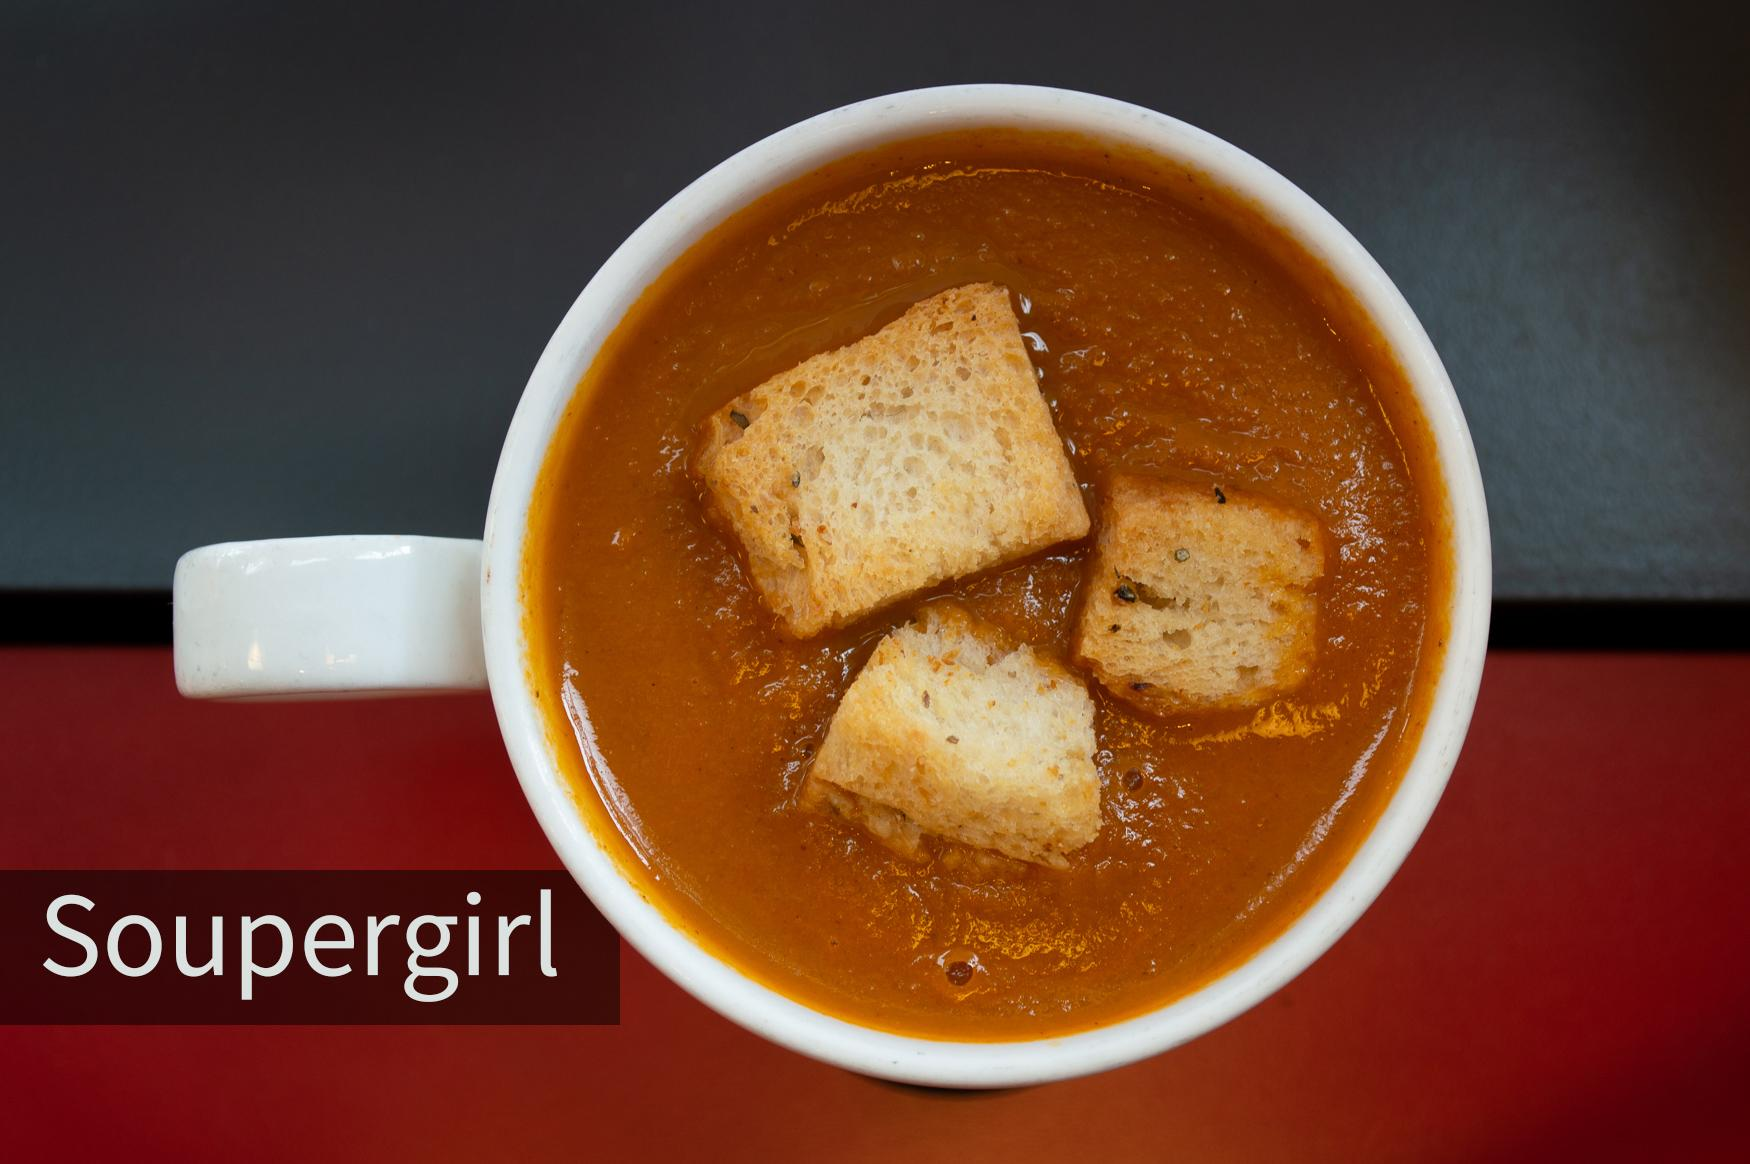 Soupergirl is a vegan soup restaurant in Takoma Park that serves soups, salads and sandwiches. There are four or five rotating soups everyday, based on which veggies are in season. You can also take a bottled gazpacho to go. (David Fisher/DC Refined)